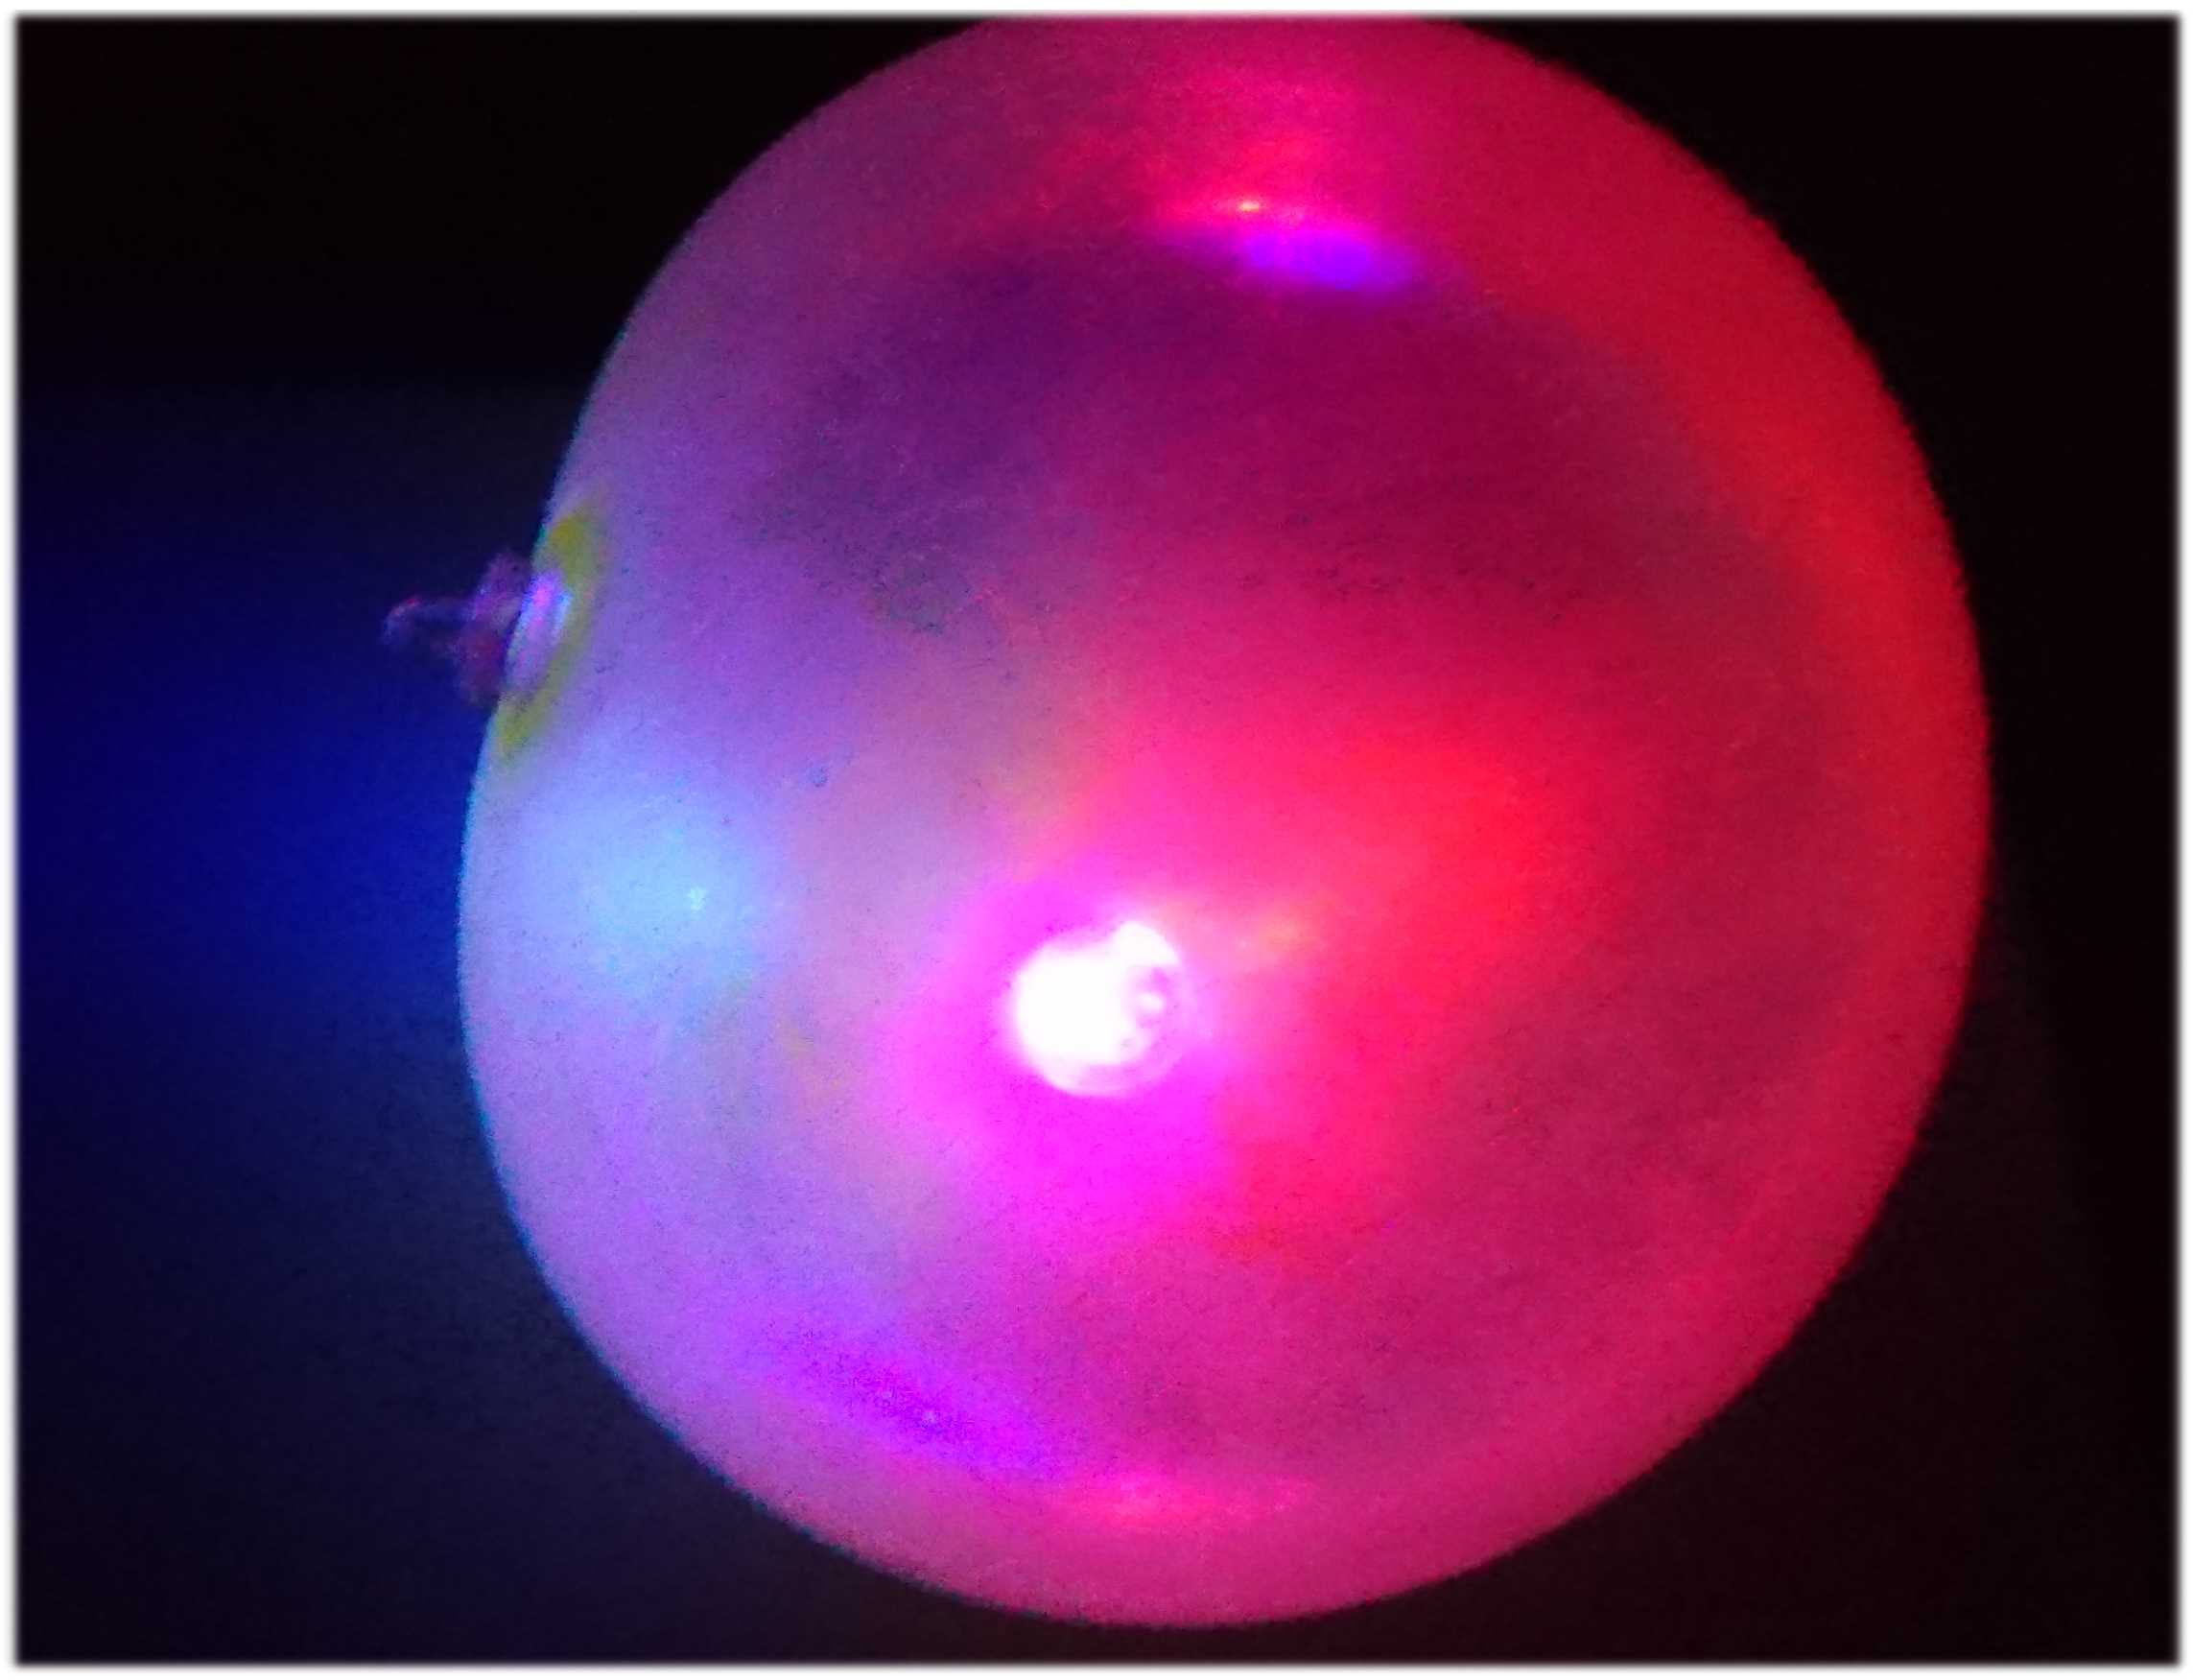 springball.ballon.led15 Luxus Ballon Mit Led Licht Dekorationen